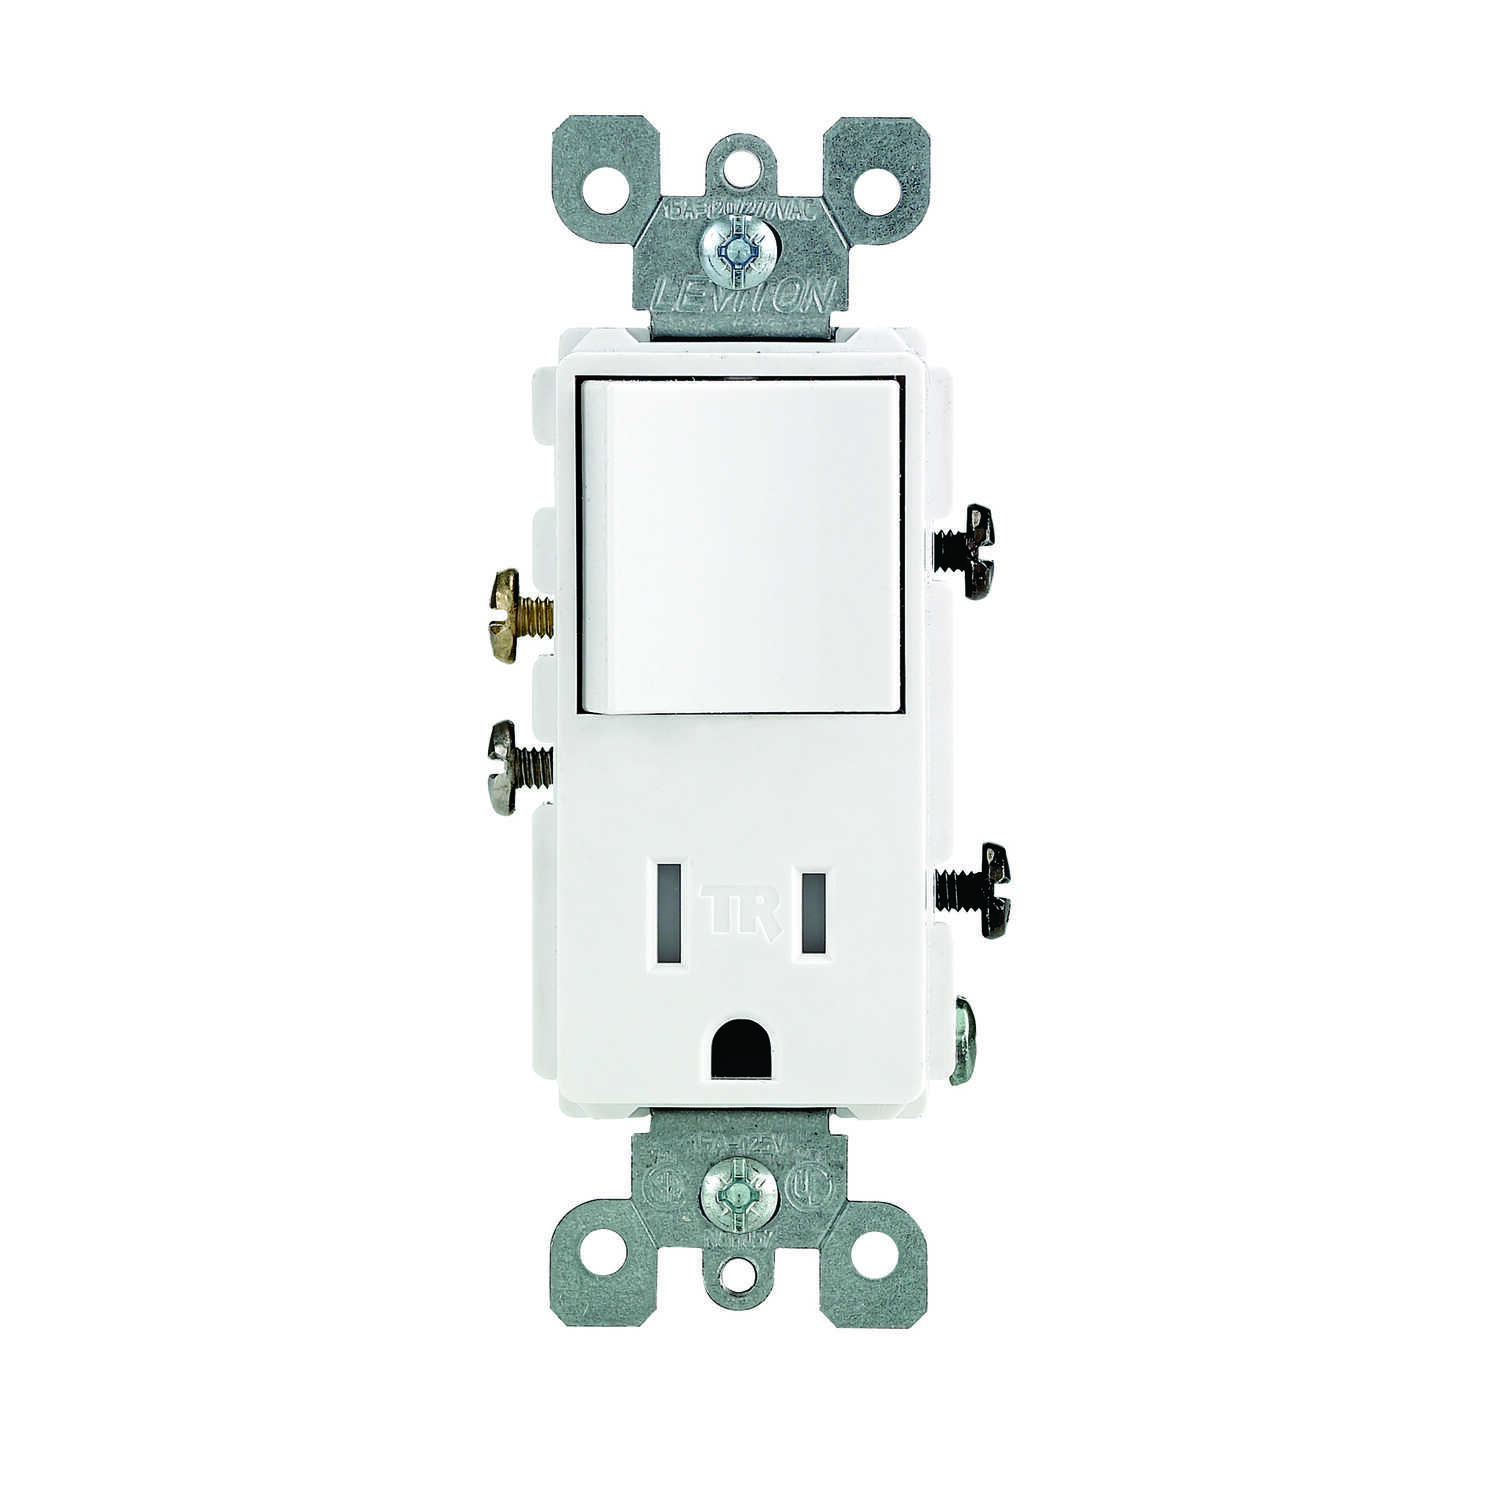 Leviton  Decora  15 amps 125 volt White  Combination Switch/Outlet  5-15 R  1 pk